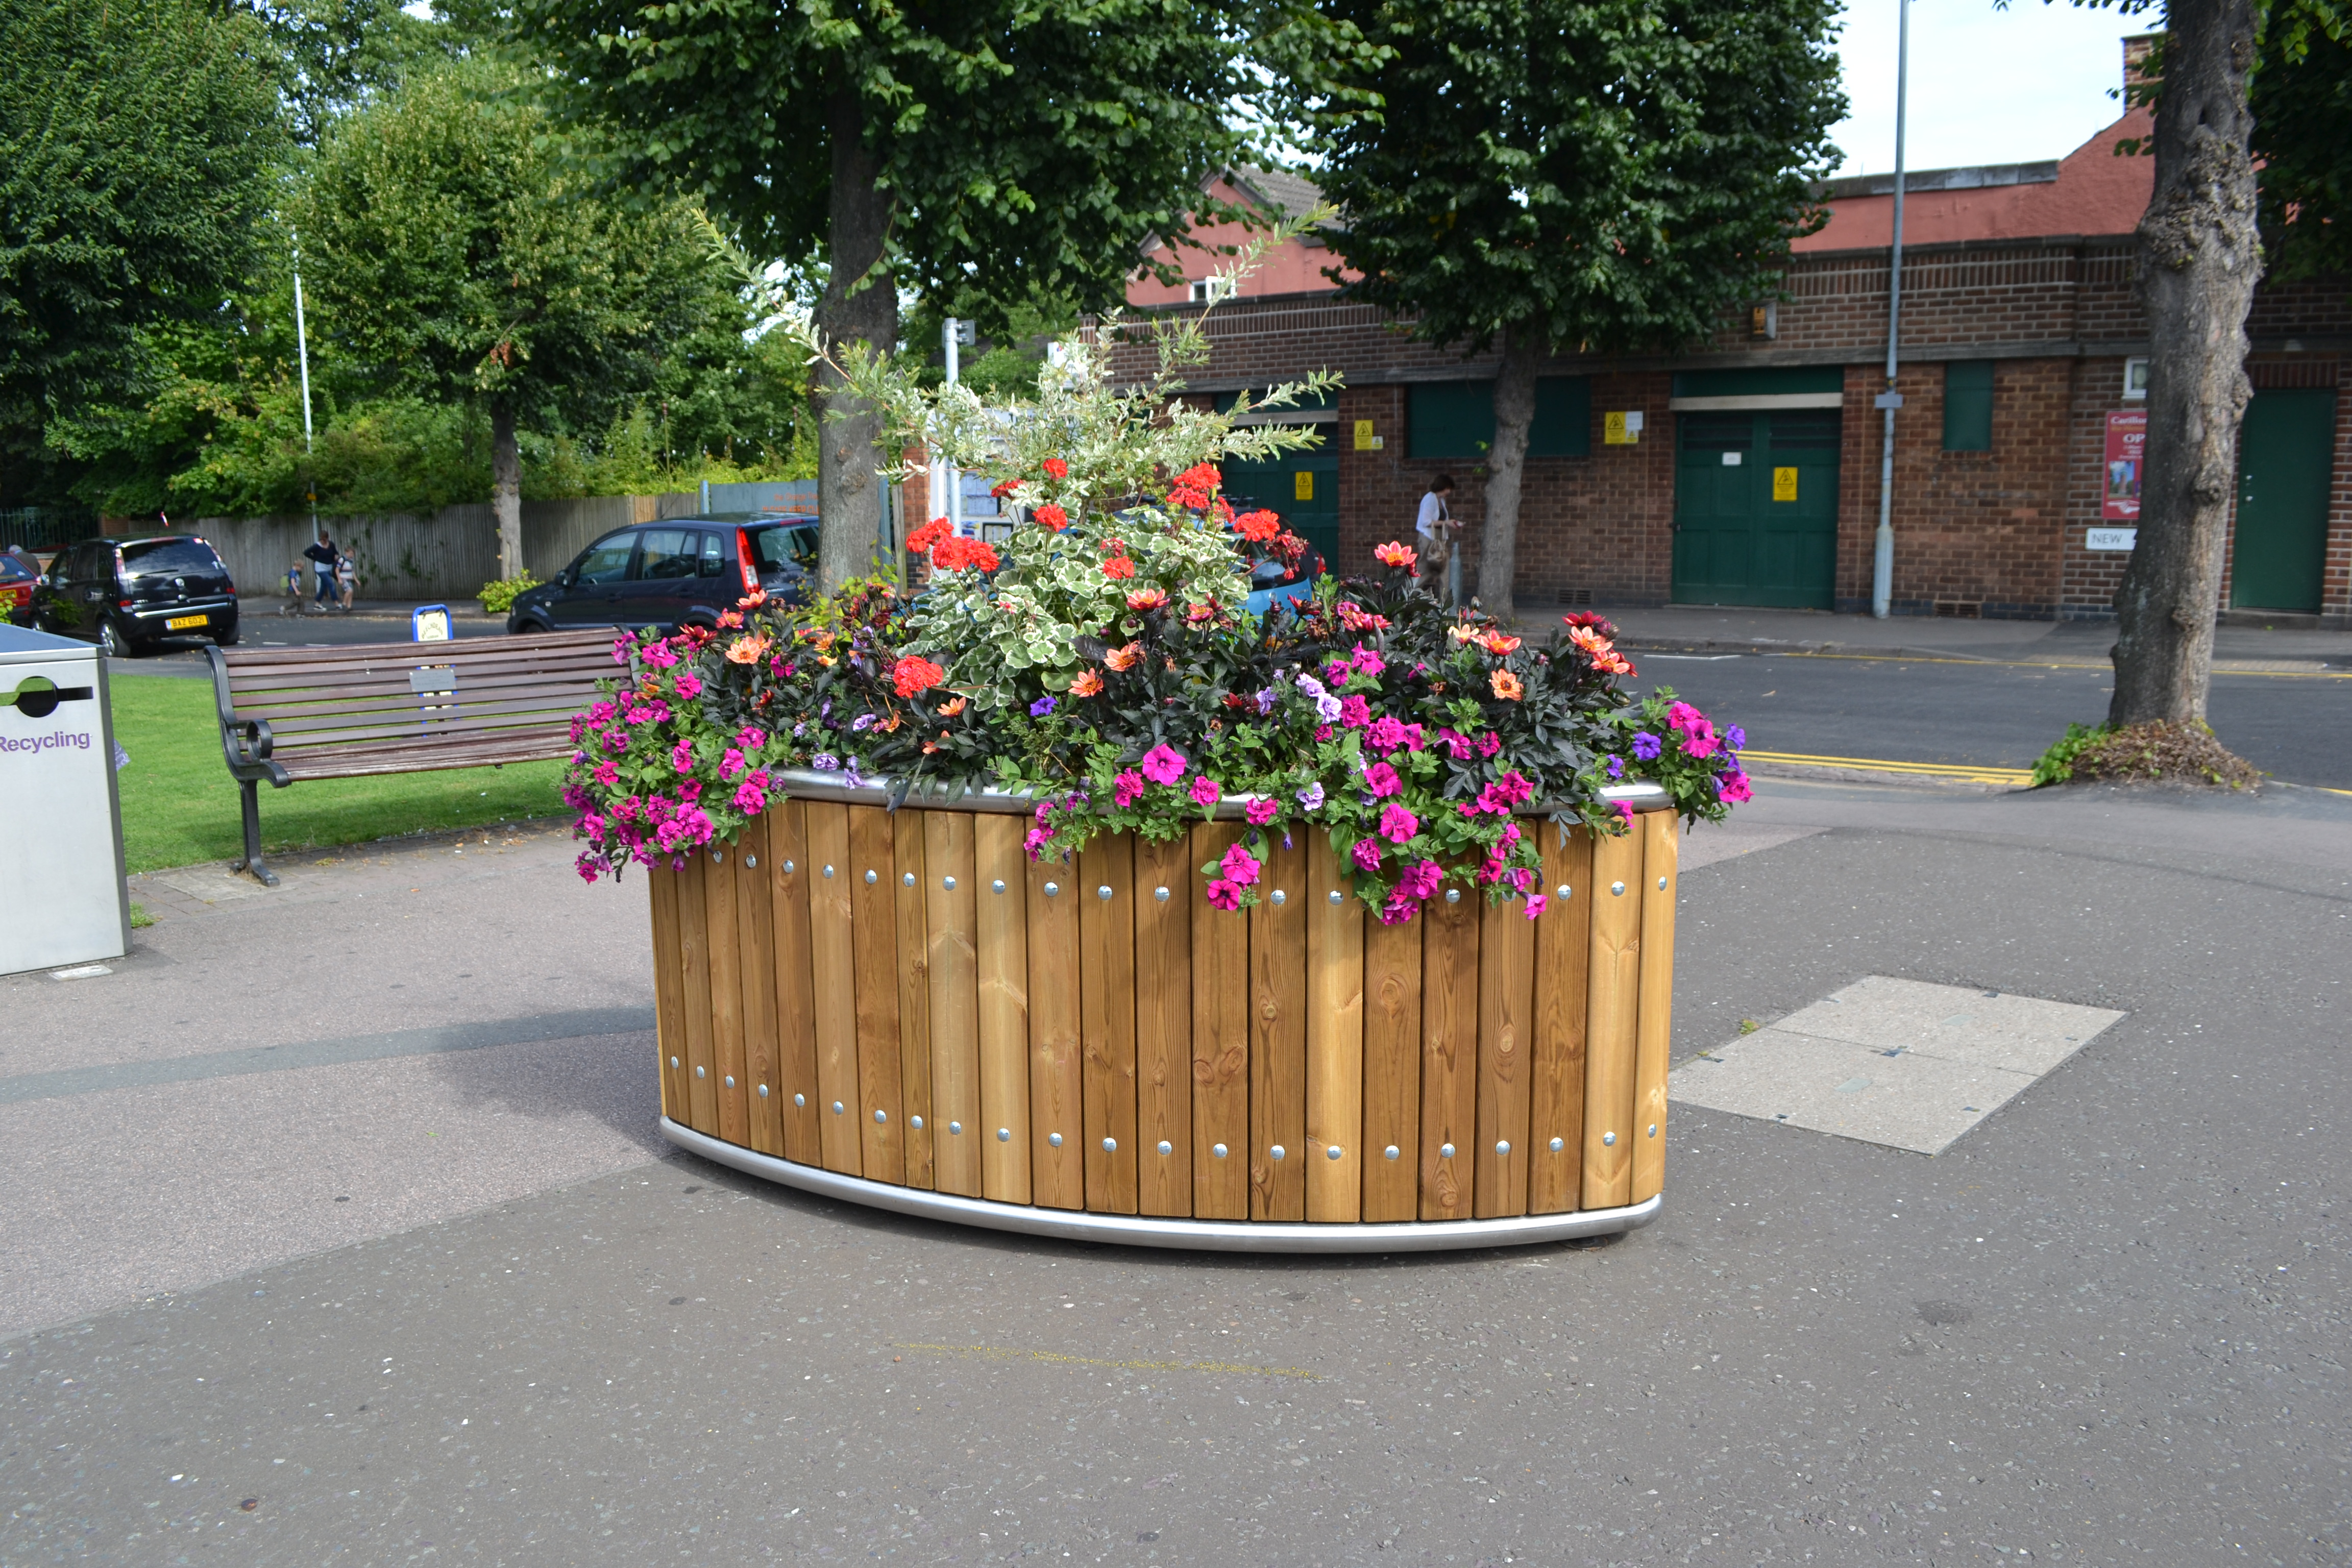 Street Design – Supplying Elliptical Planters for their Local Town Centre